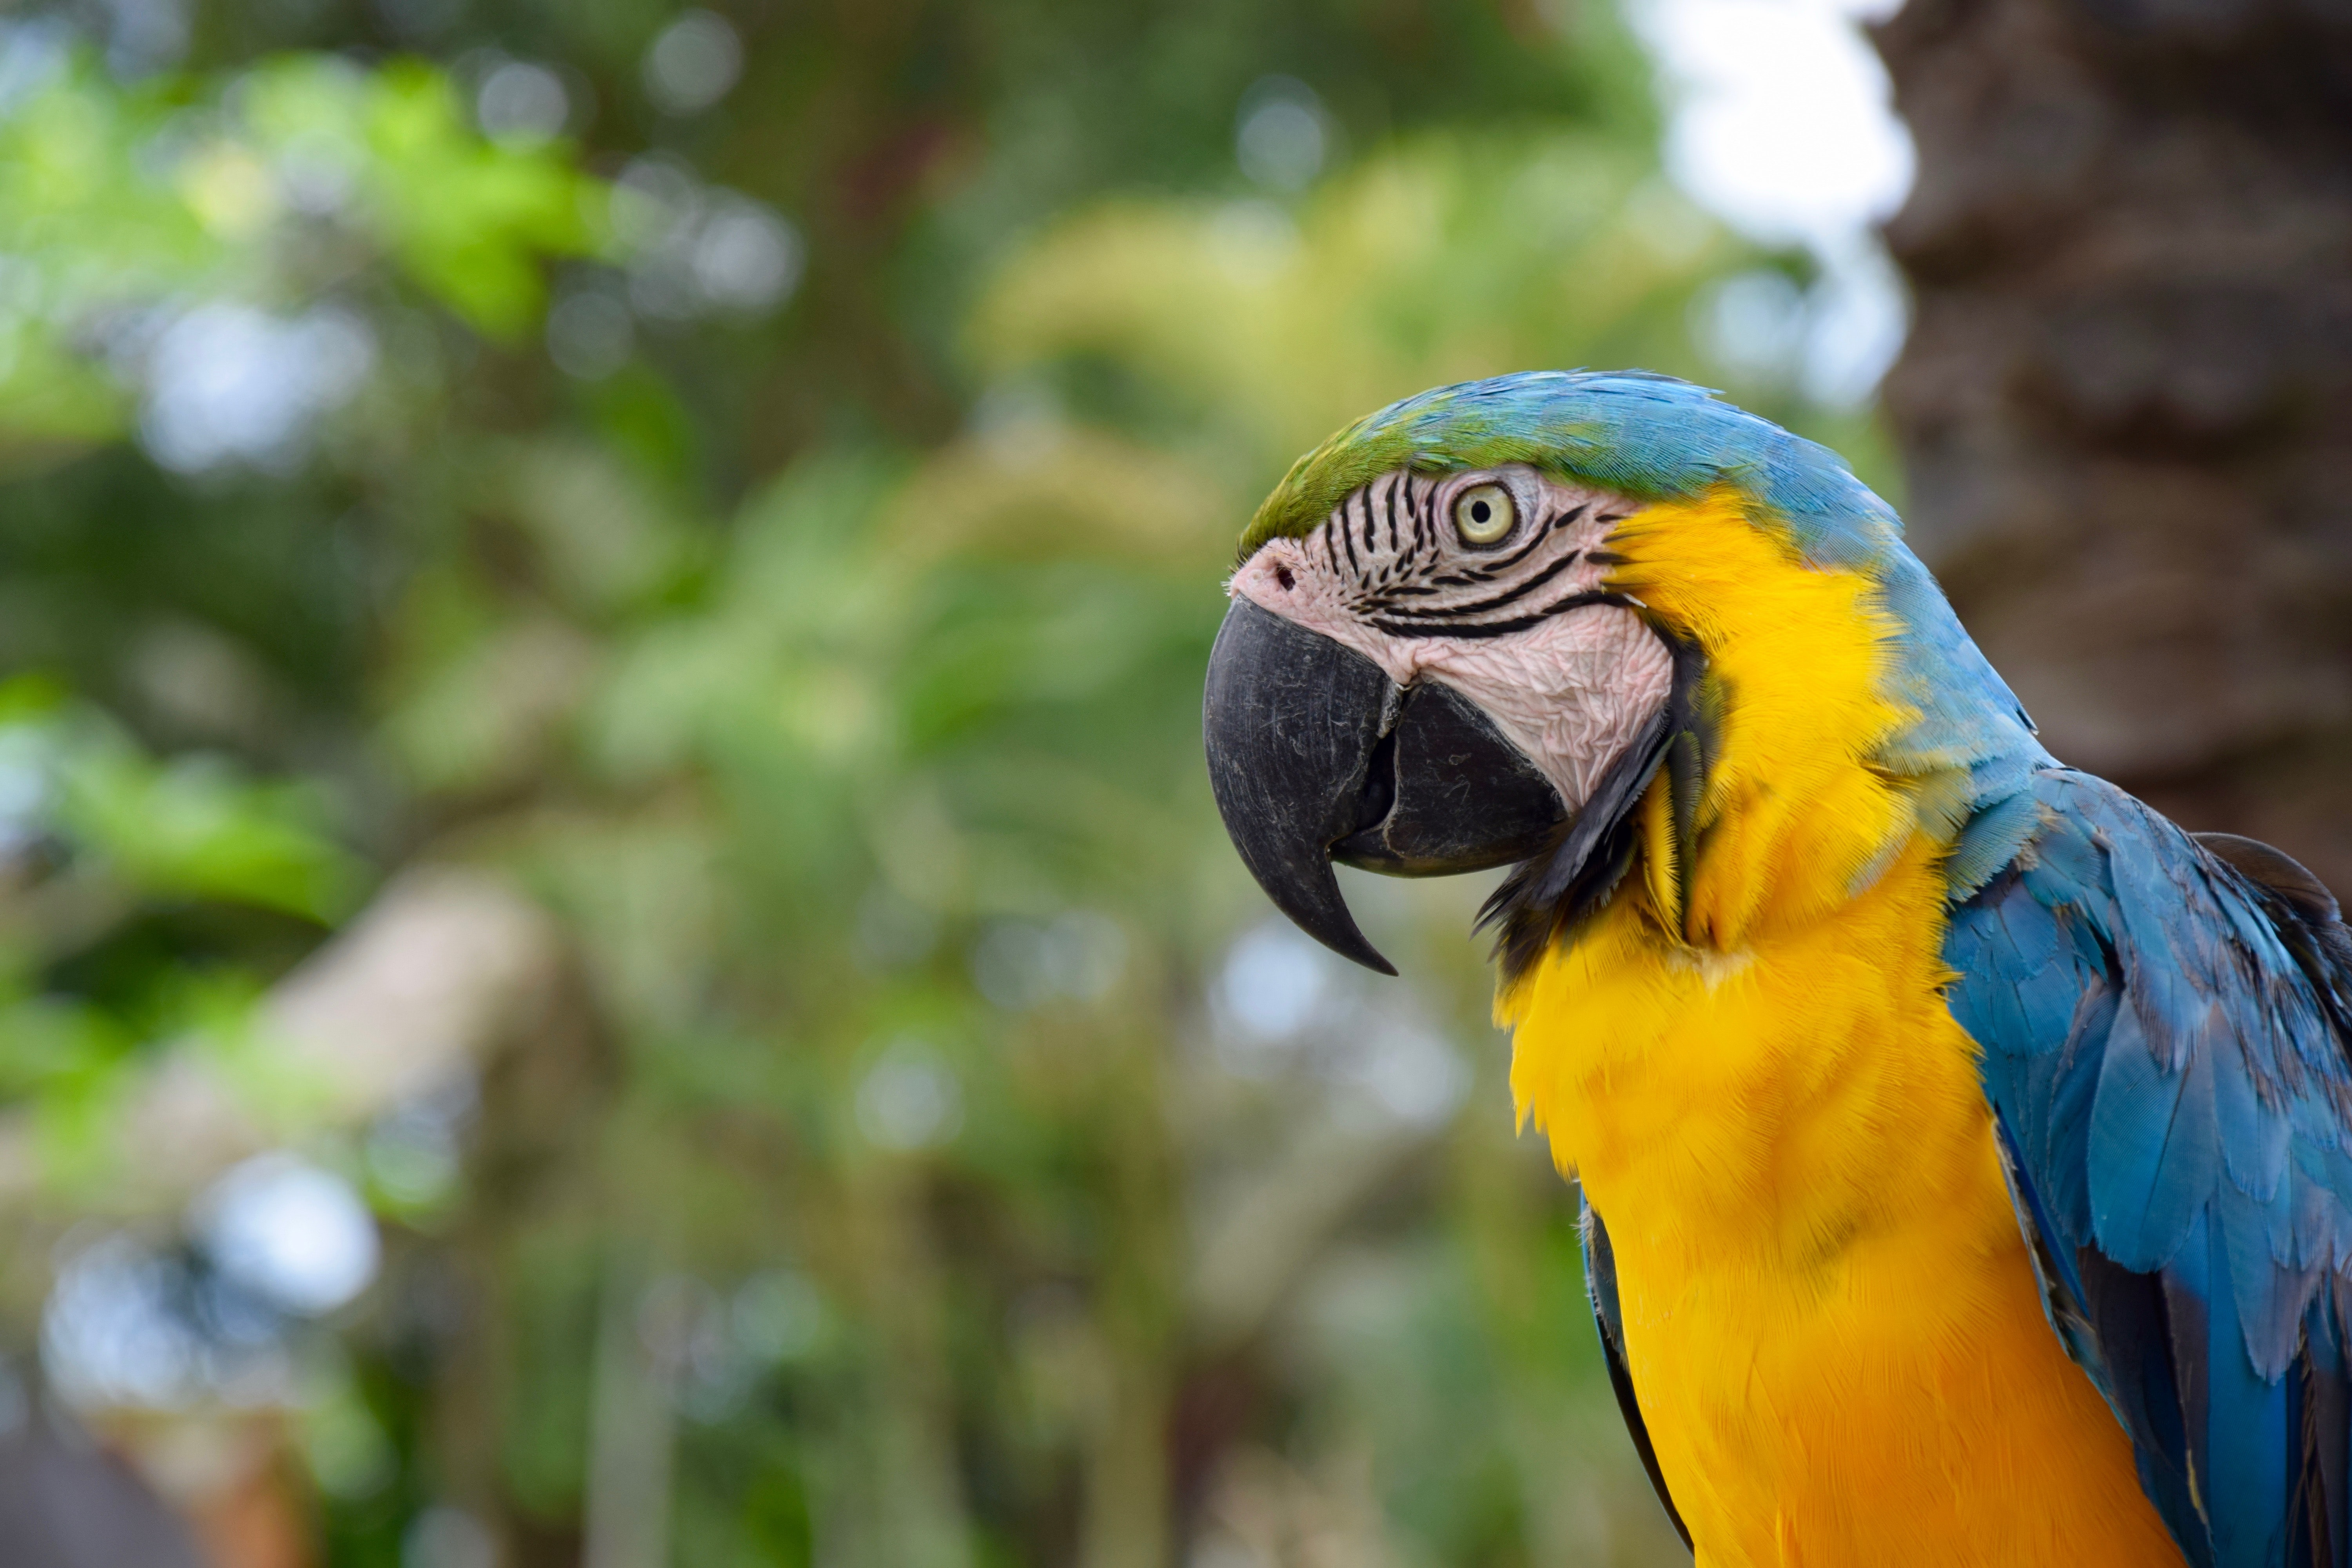 blue and yellow macaw standing near brown tree outdoor during daytime